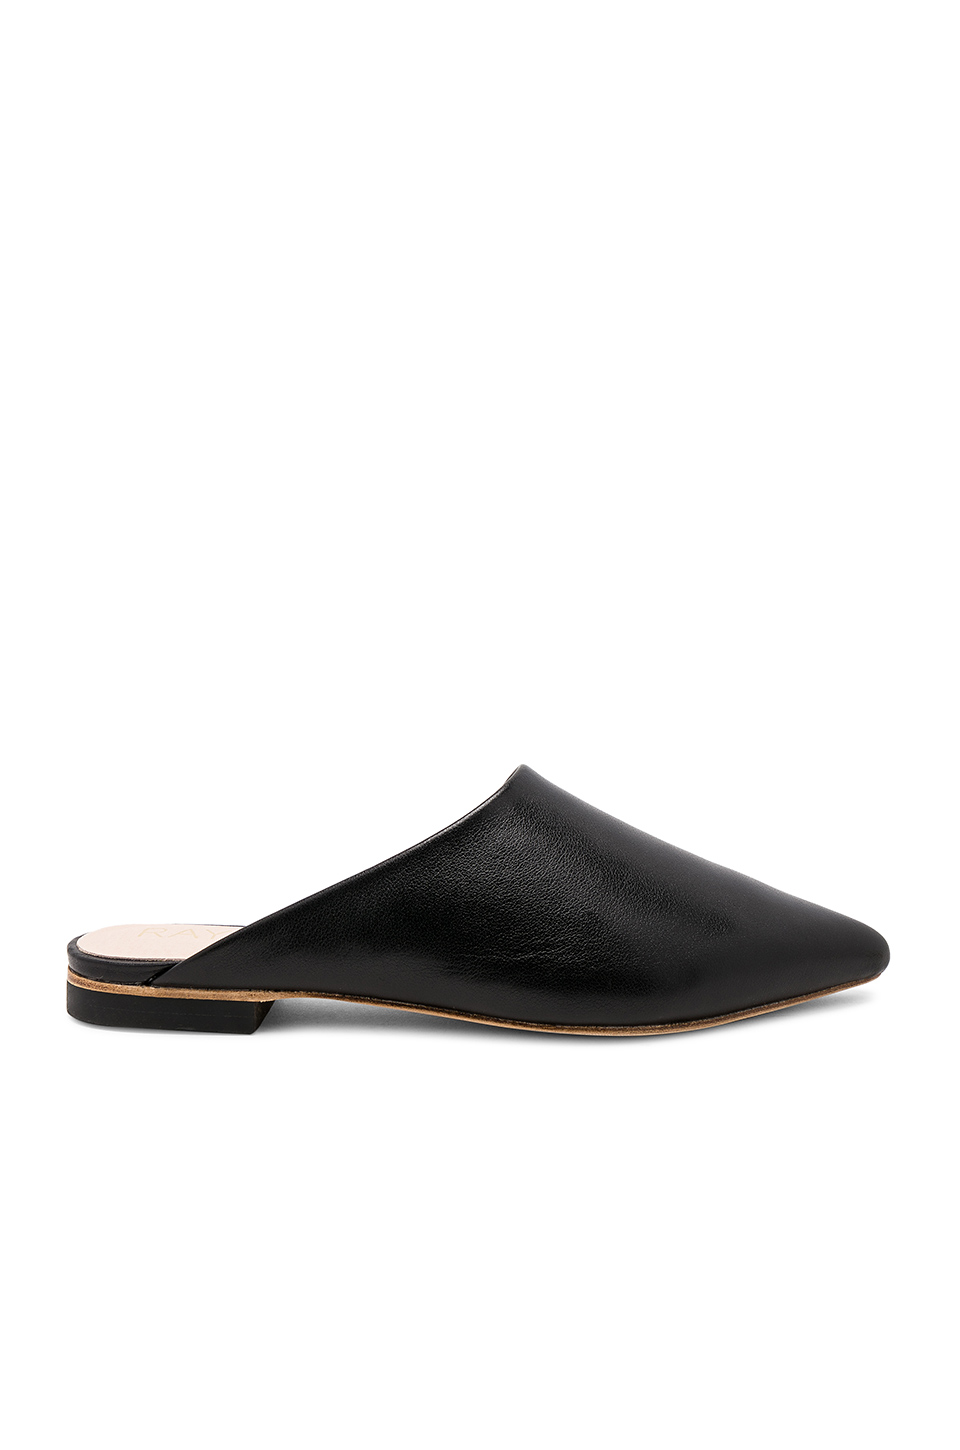 RAYE Starlet Flat in Black Leather